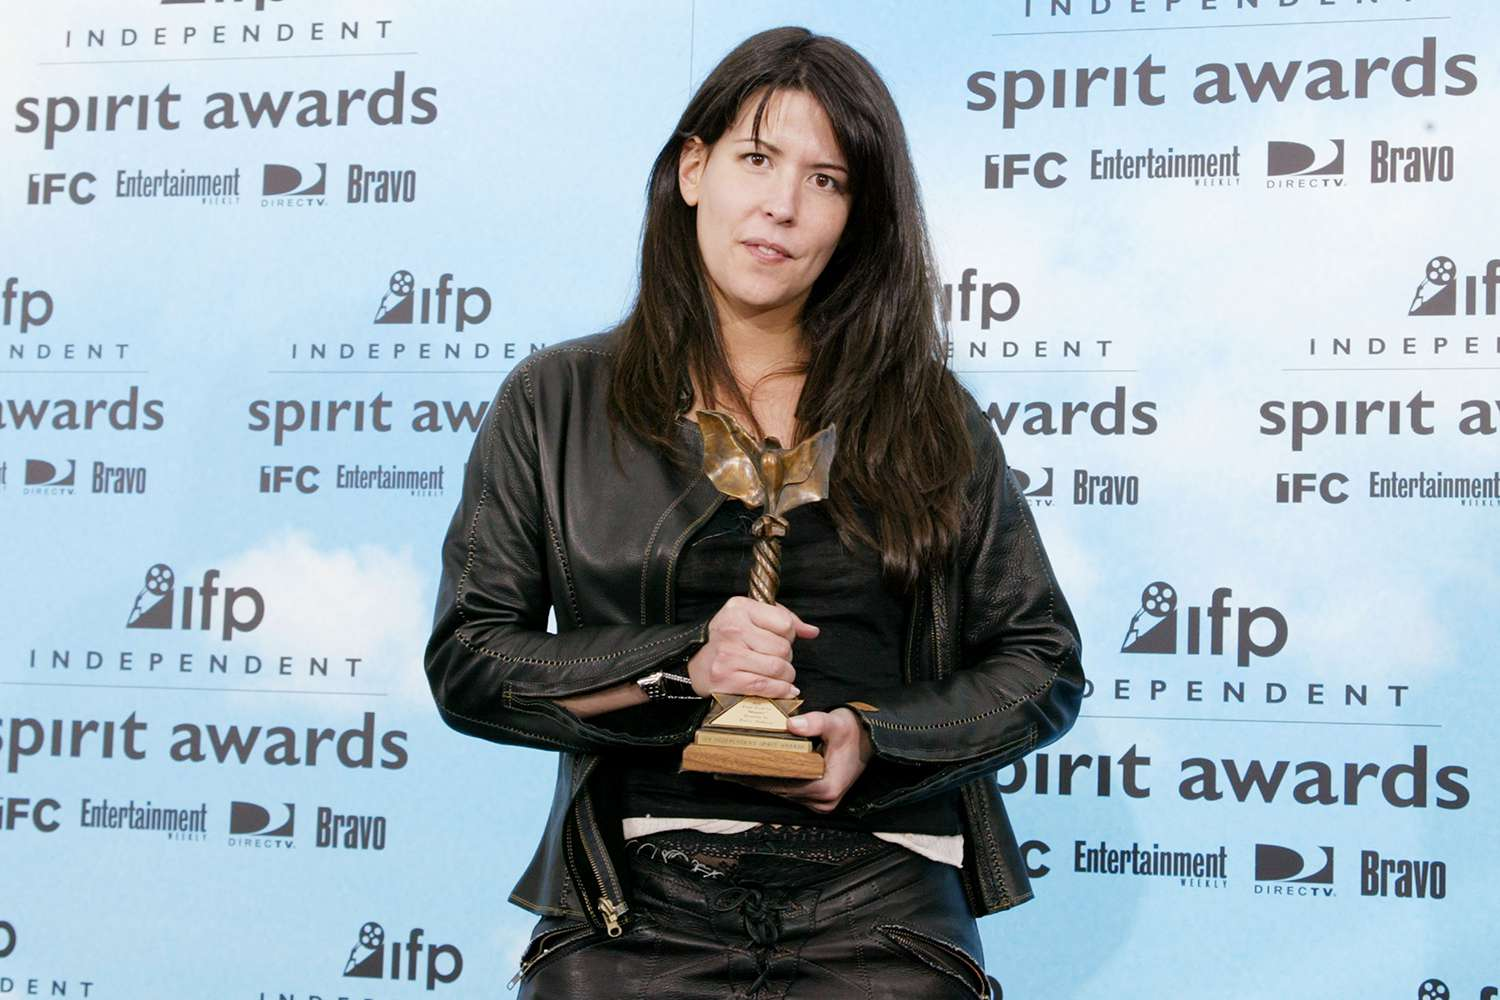 Filmmaker Patty Jenkins posing with the Independent Spirit Award for Best Director that she won for 2003's 'Monster'